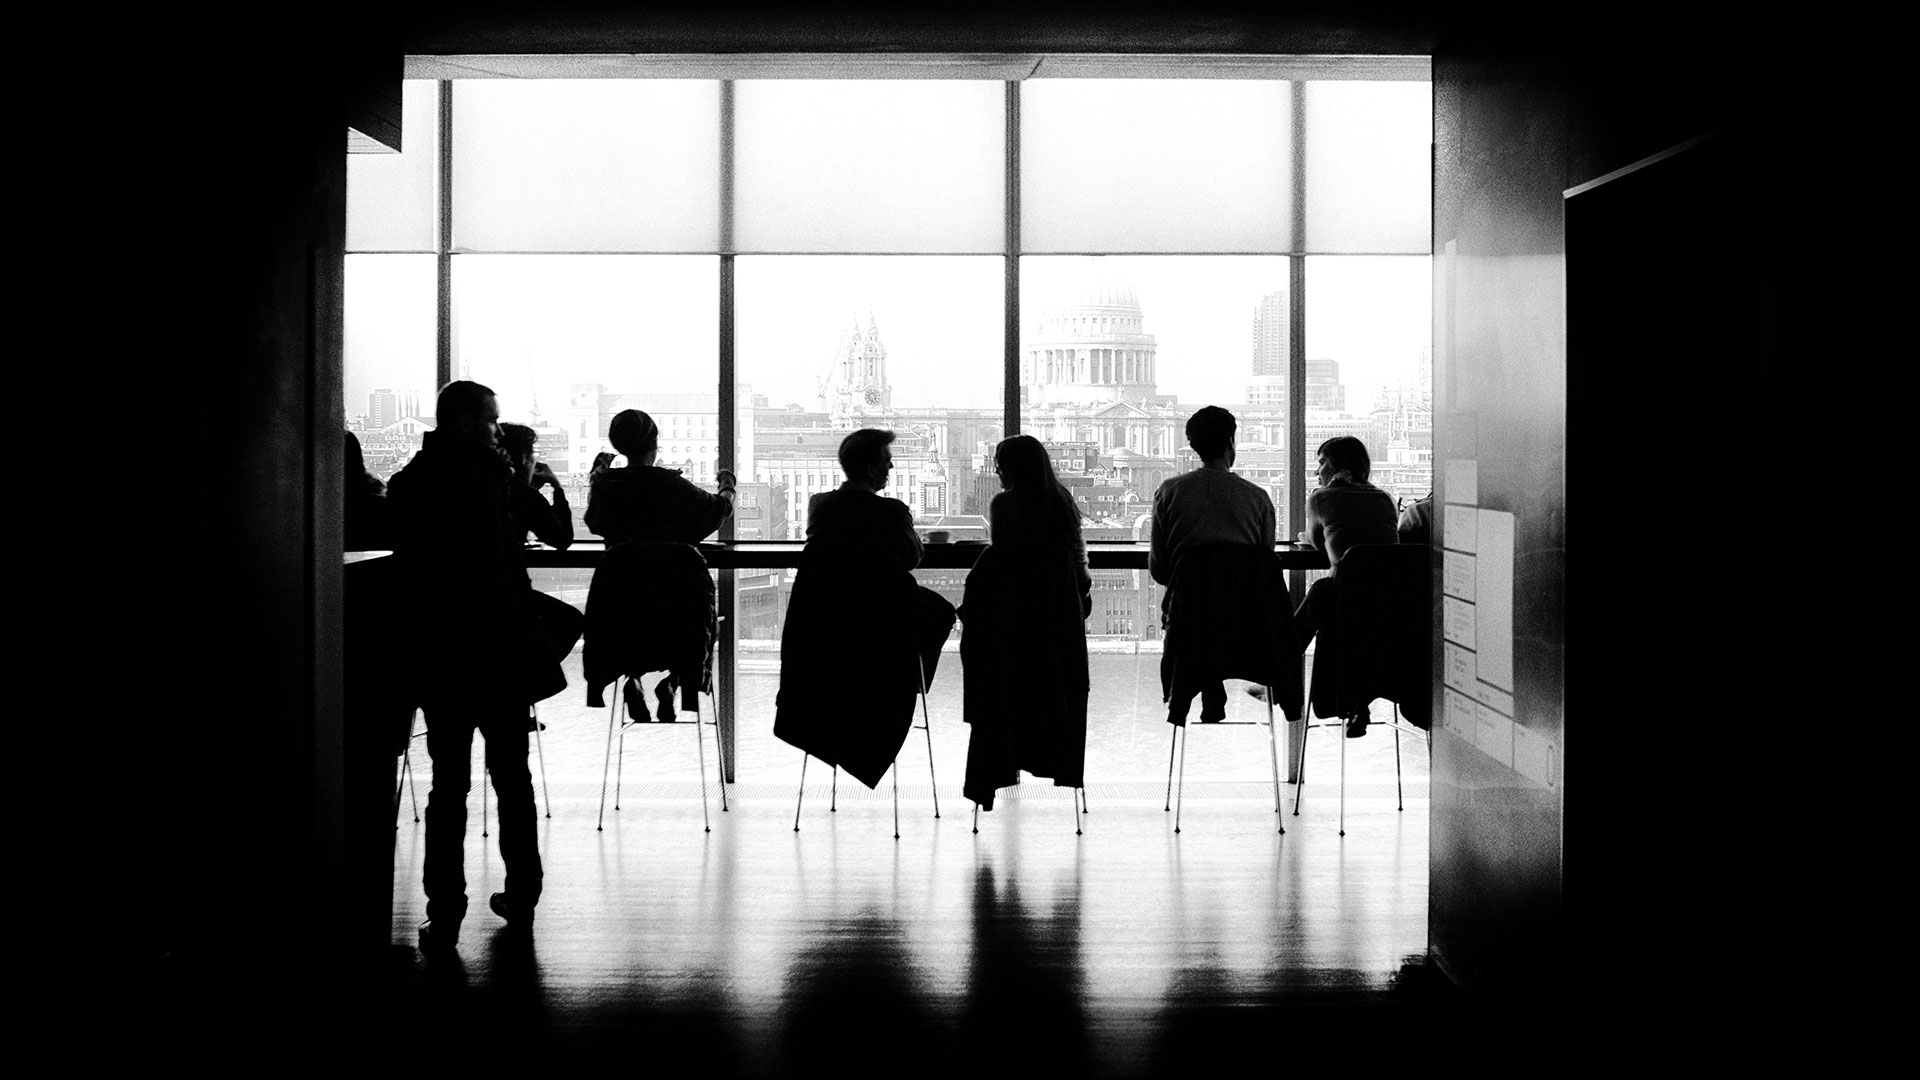 Group of people in black and white looking at the London skyline